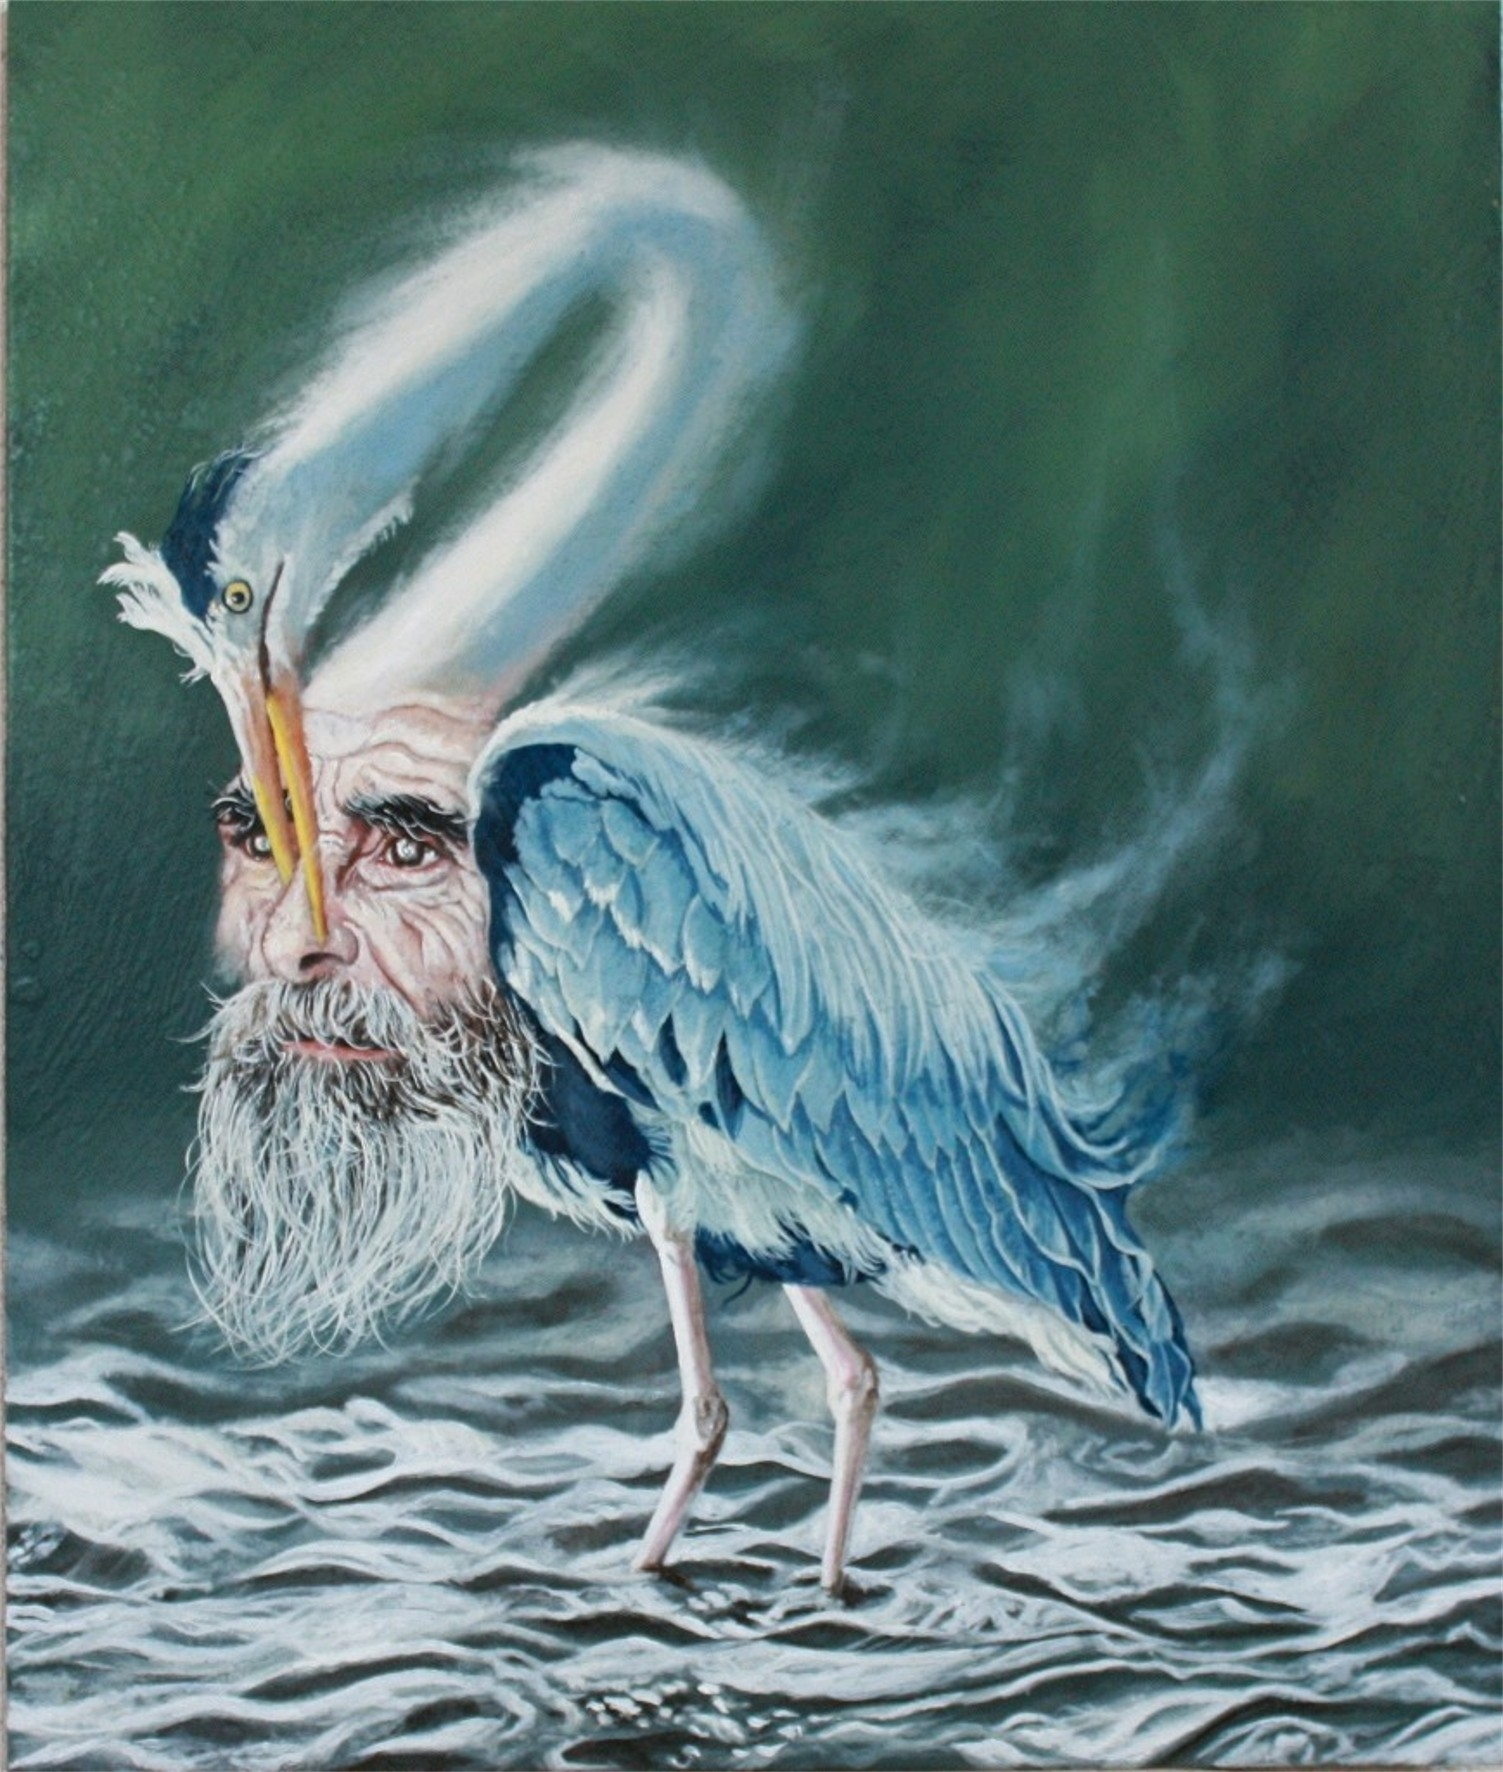 Alessandro Bulgarini, The bird of self knowledge, olio su tavola, cm 50 x 60, 2013